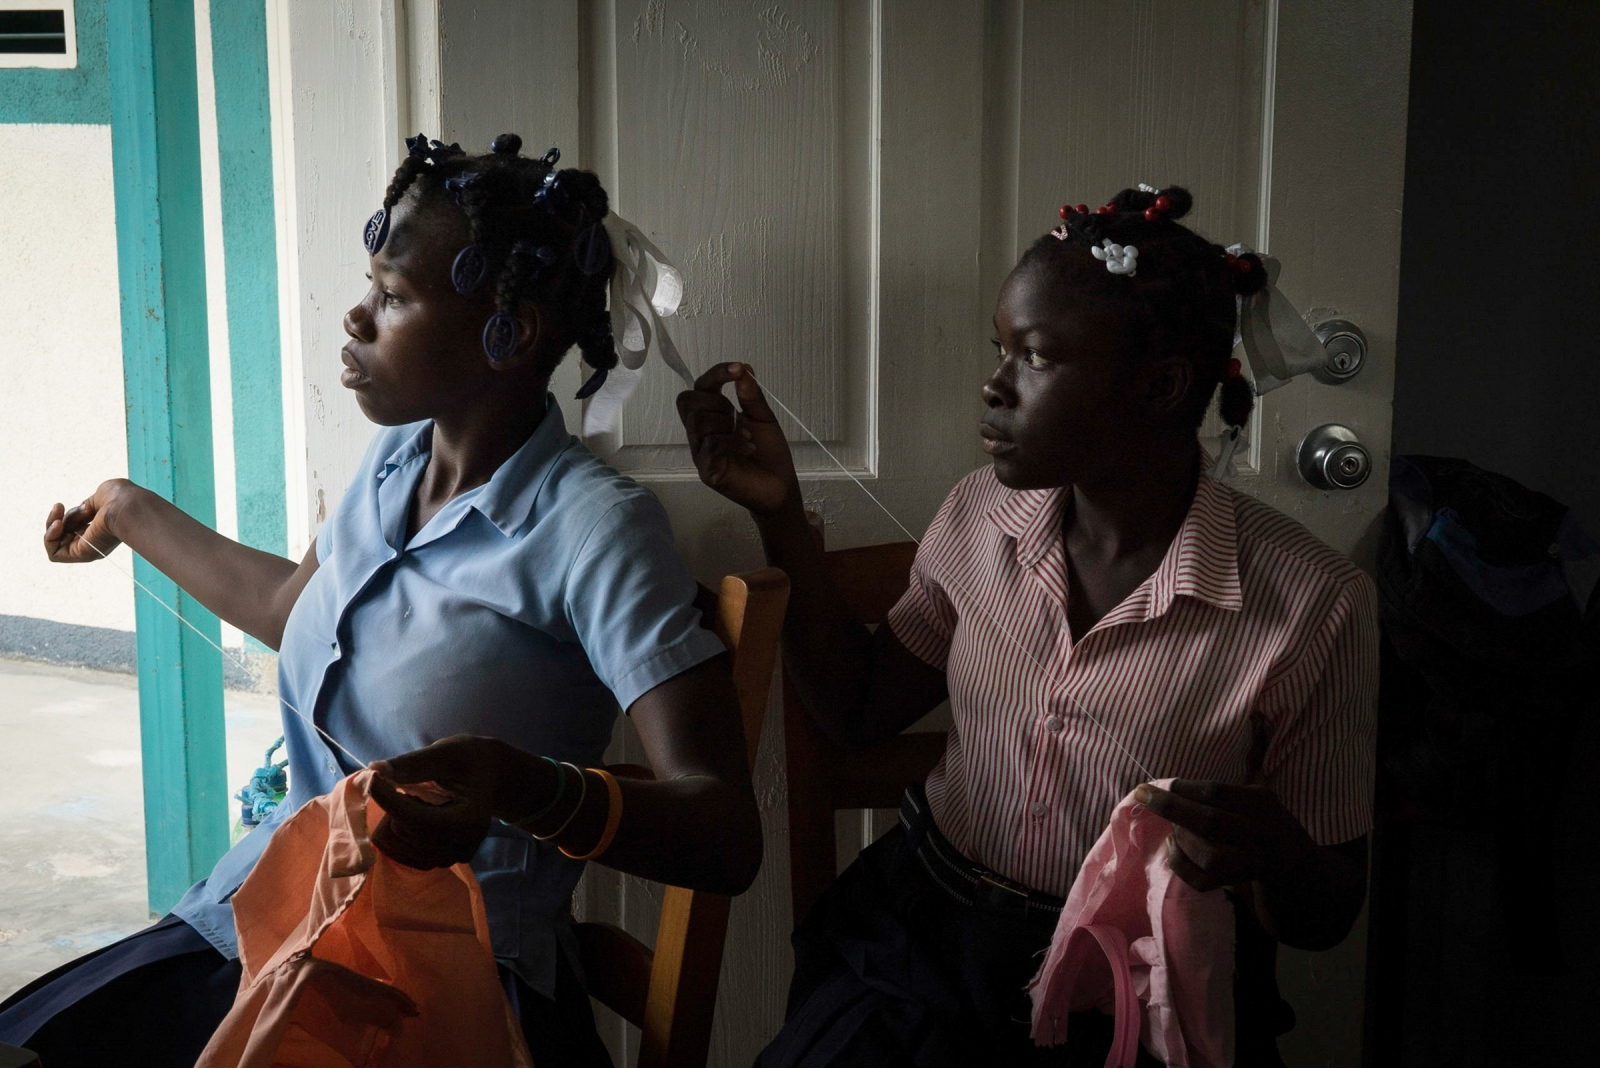 Faïka (left), 17, attends an afternoon sewing class. Since living in domesticity at her sister's home, Faïka has been able to attend school and learn a profession she can pursue once graduating. Since 2014, the Support Service for Professional Integration helps young graduates find jobs through trainings, internships, and partnerships with various companies. Only a small percentage of students, however, are able to find sustainable employment.